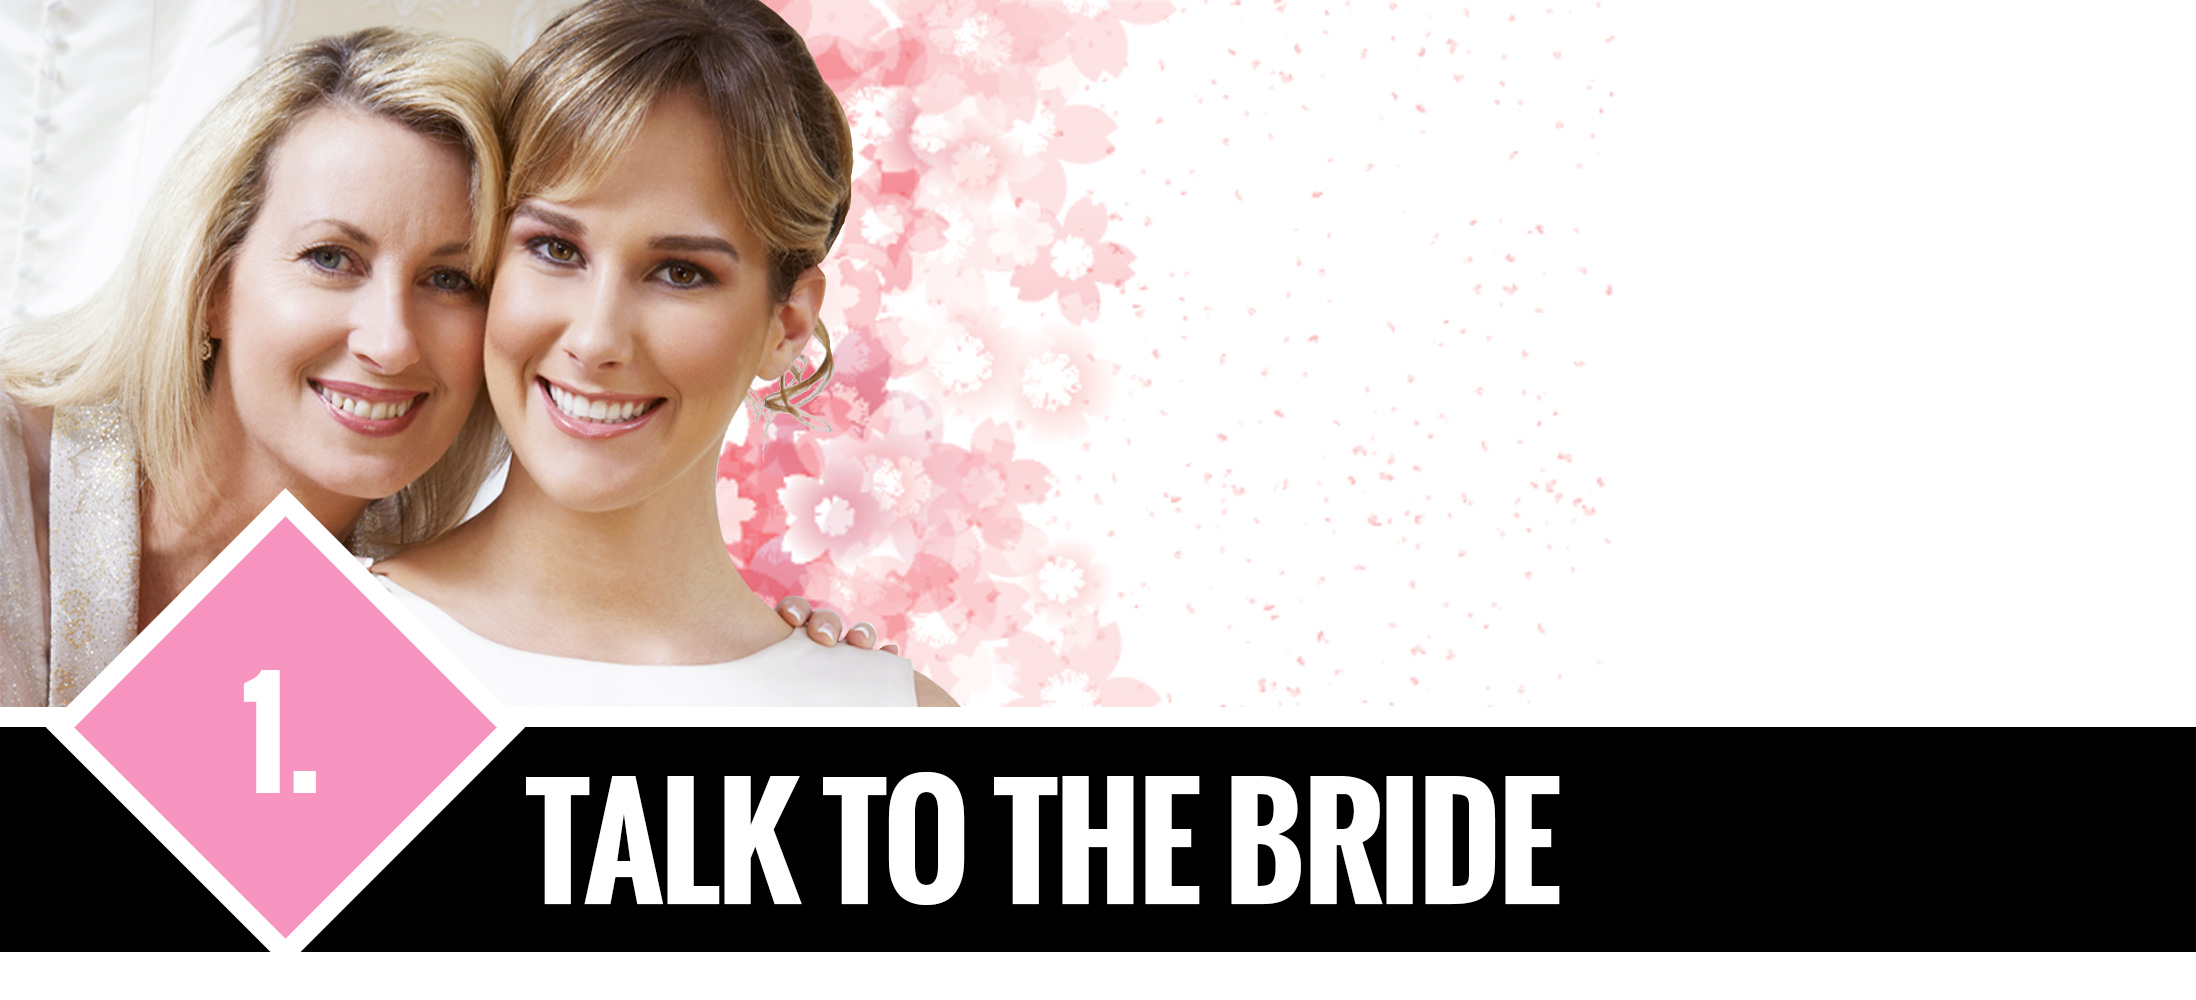 1. Talk to the Bride